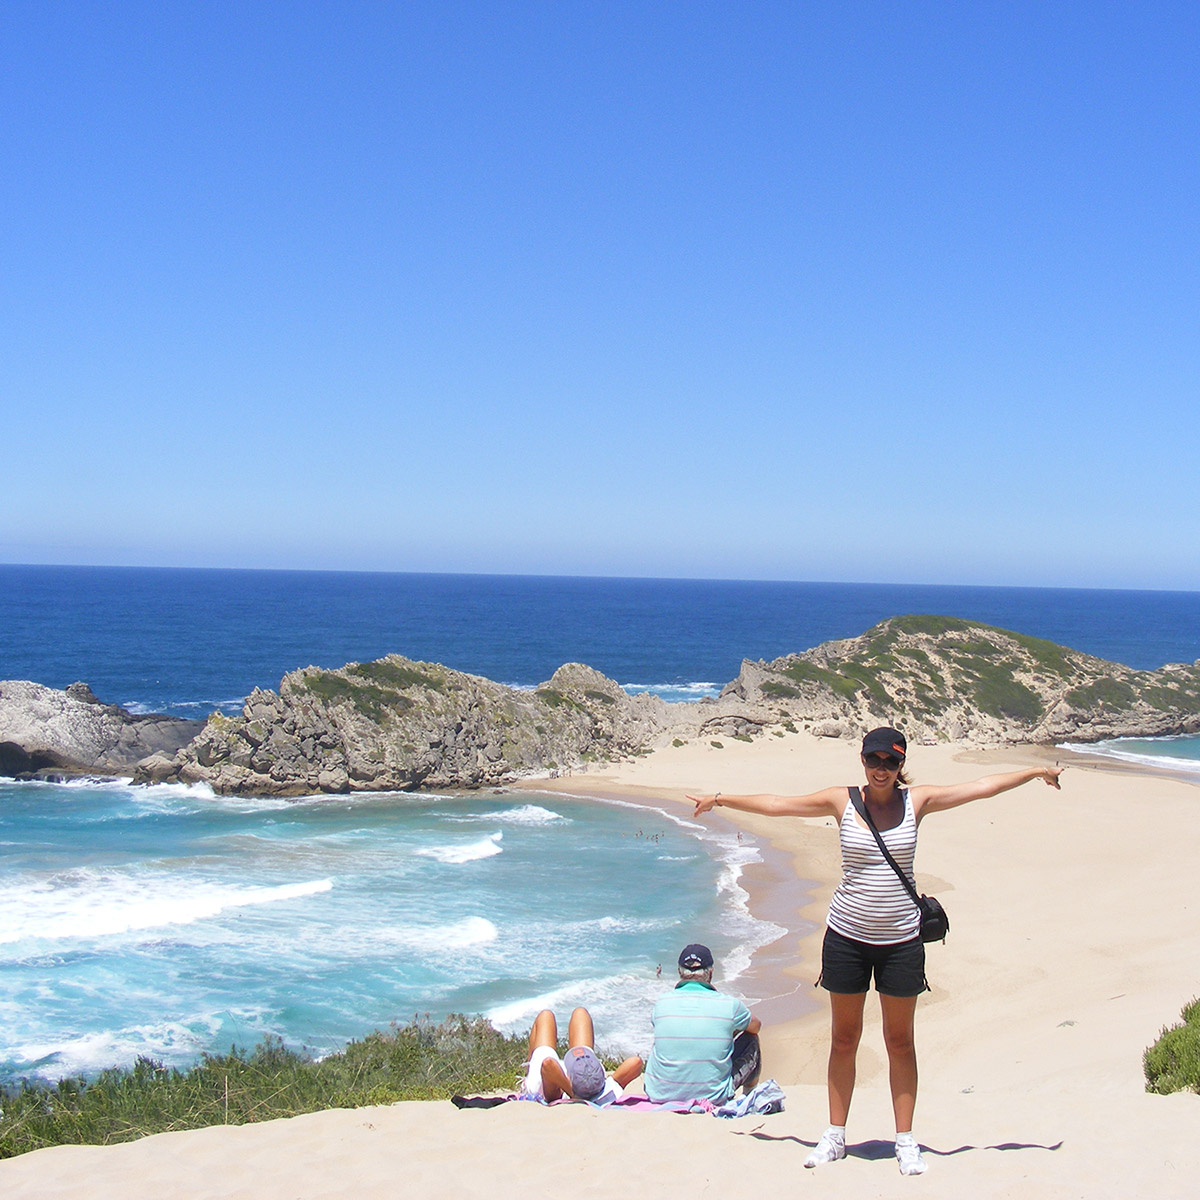 robberg nature reserve hike picture for ocean blue adventures website